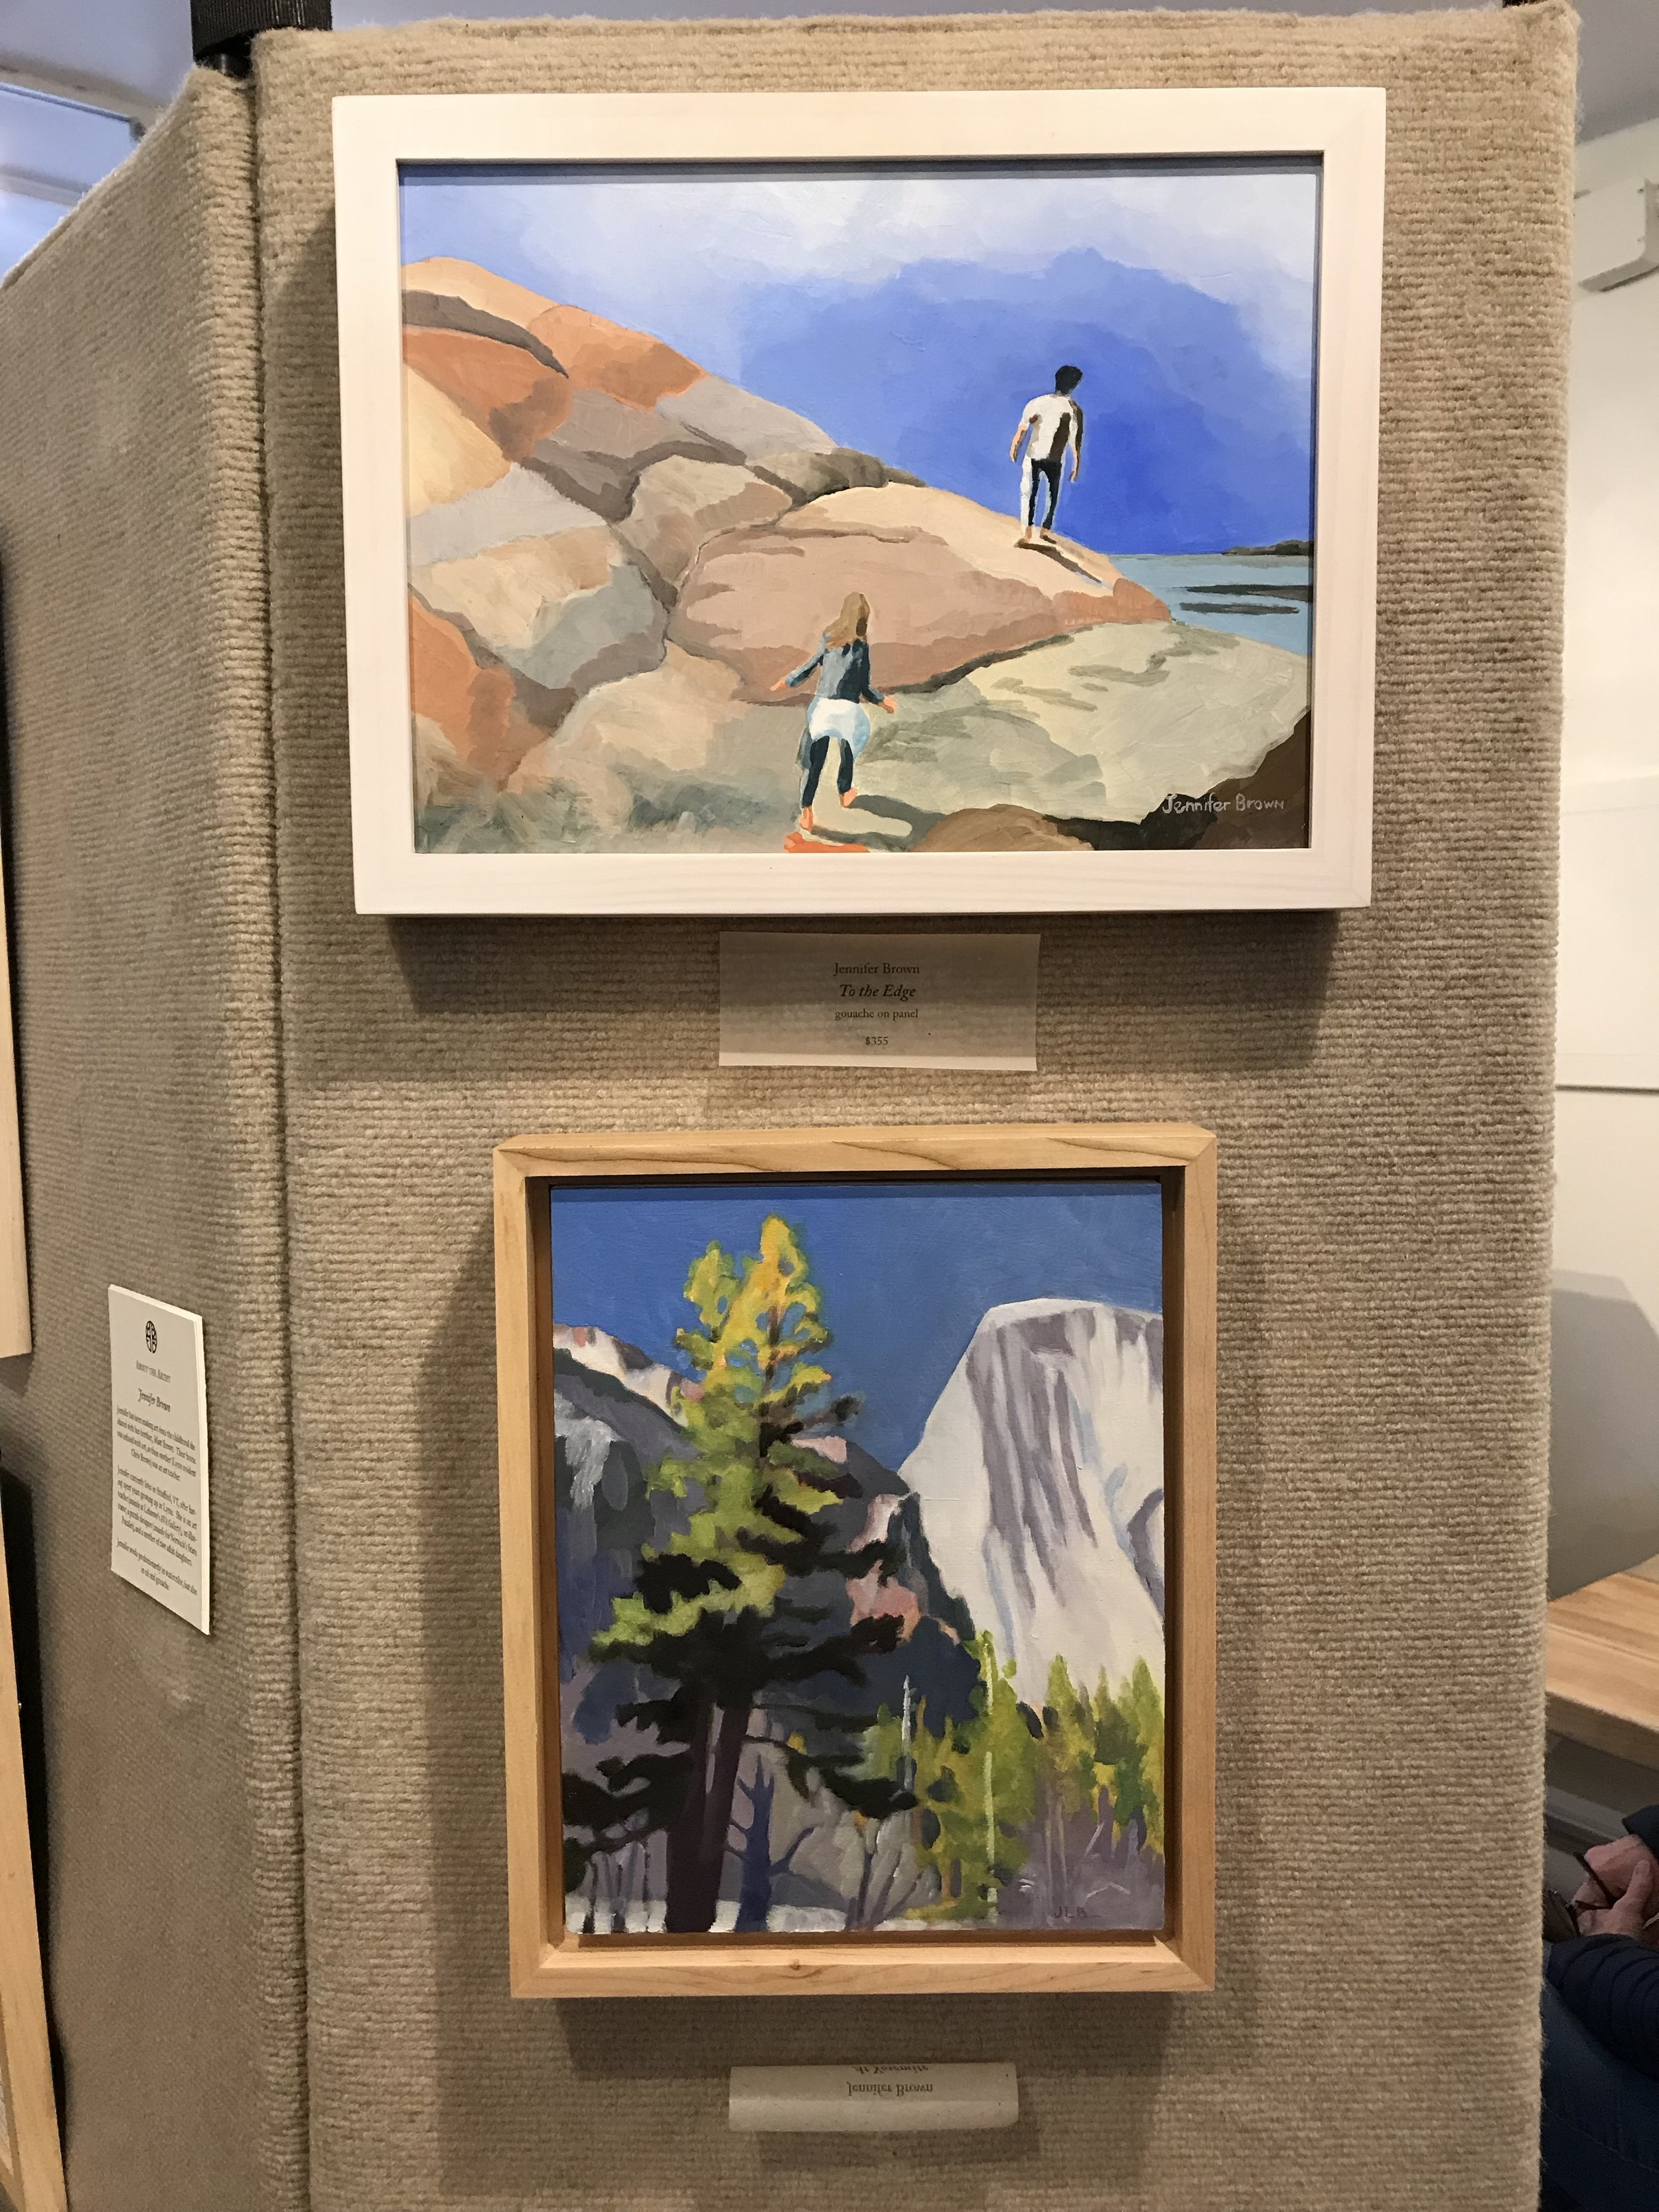 Exhibits and Galleries - See my work on exhibit at Matt Brown Fine Arts in Lyme NH. Open on Fridays and Saturdays from 11-5. 1 Main Street, Lyme, NH.